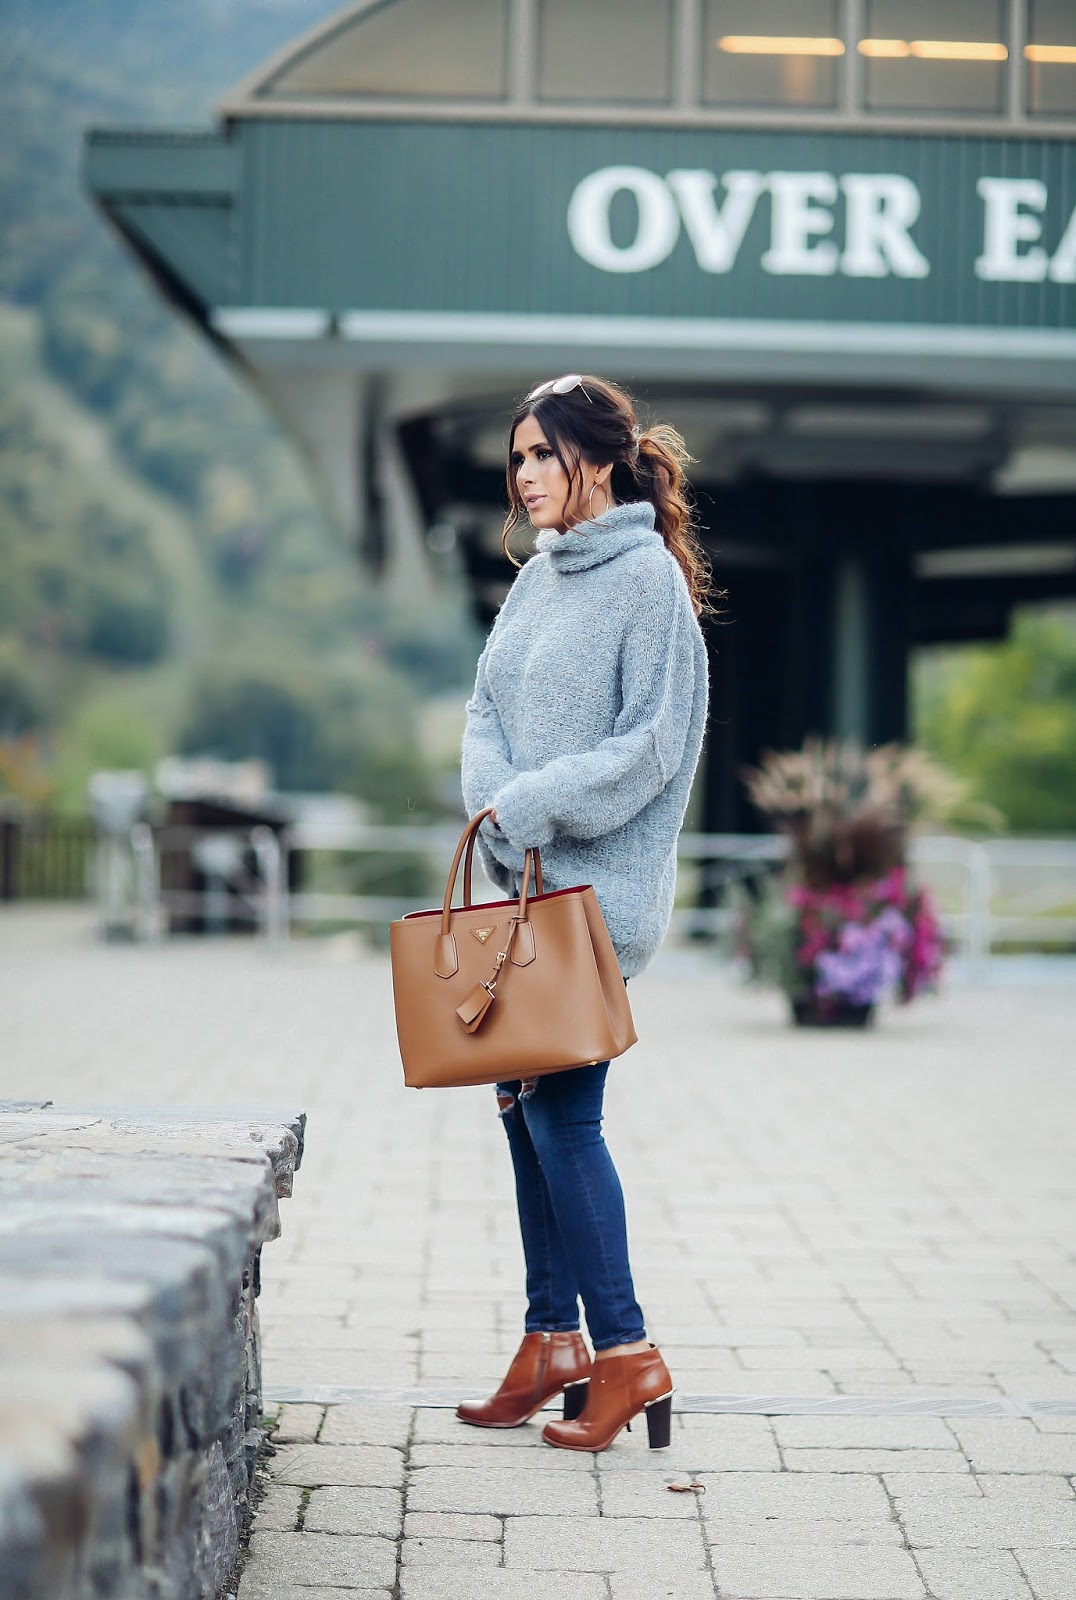 emily gemma, the sweetest thing blog, Free people turtleneck sweater, AG ripped skinny jeans, best AG skinny jeans, bloggers wearing AG skinny jeans, tan prada tote, tan cognac booties for fall, travel bloggers, travel and fashion blogger, Stowe mountain lodge, stowe vermont, pinterest fall fashion, pinterest fall outfits, fall fashion 2016, women outfits pinterest fall winter